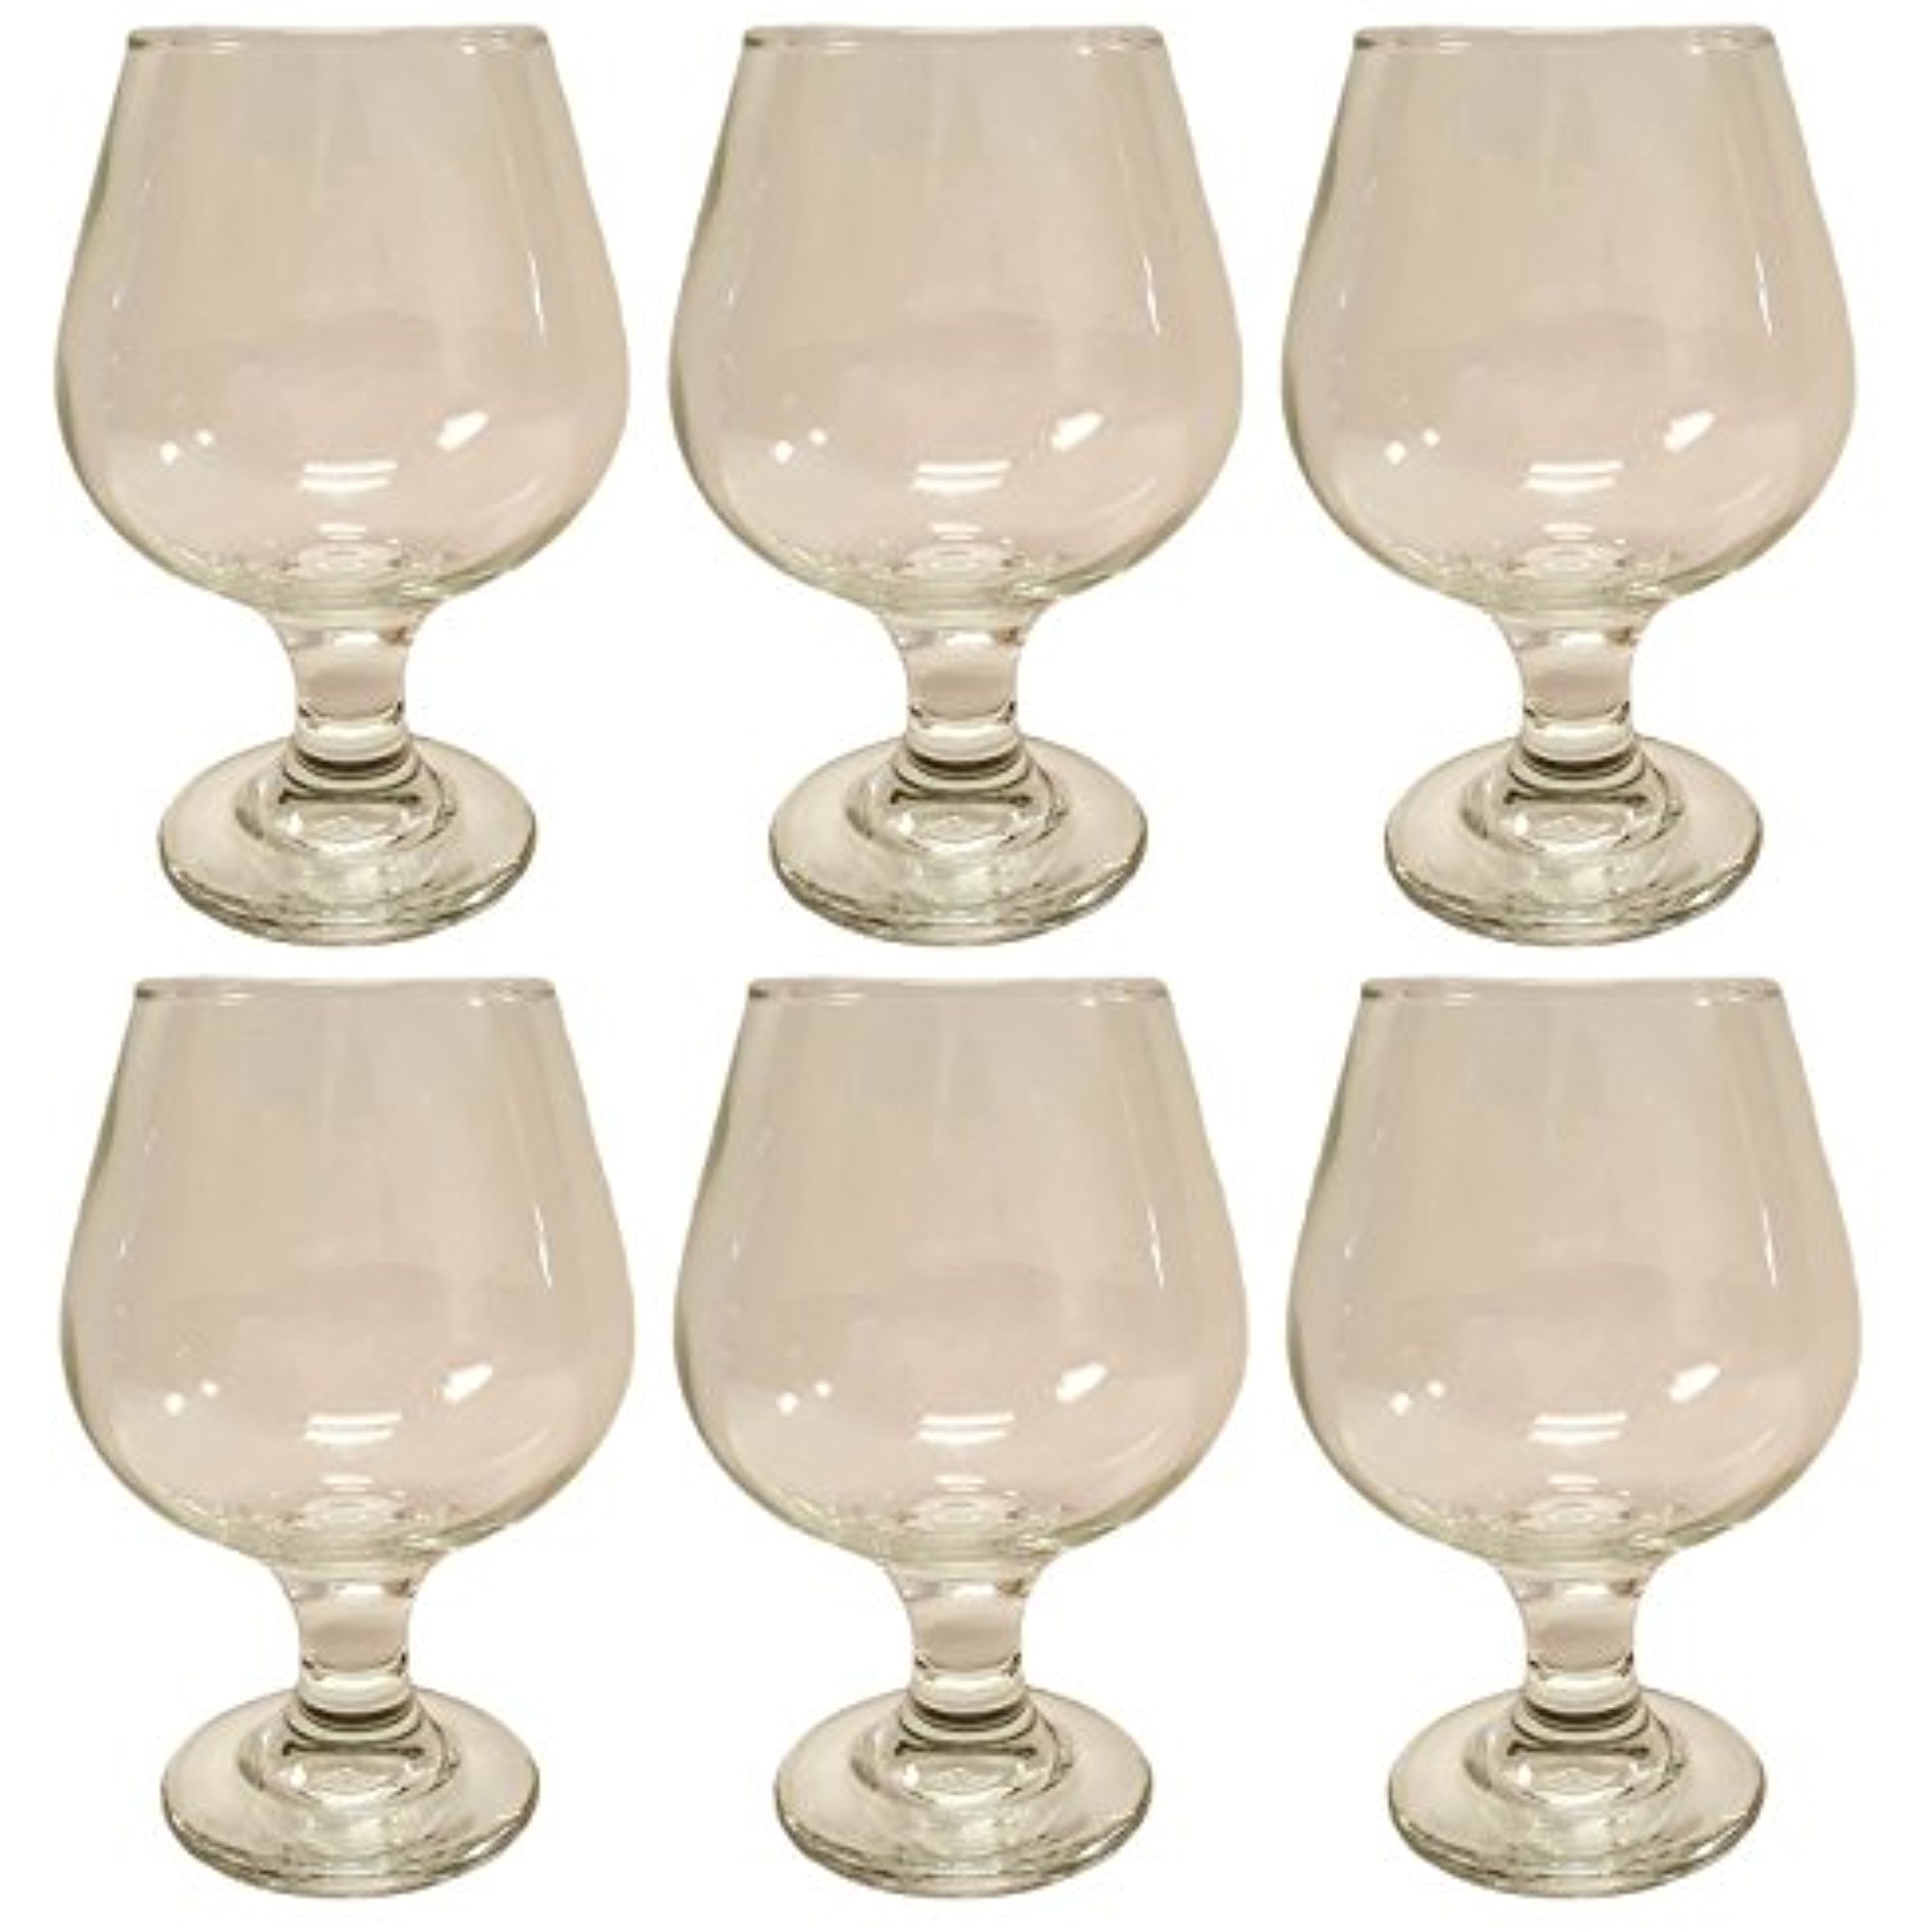 Set of 6 Cognac Glasses! Beautiful Epure Italian Glass 8.8oz Cognac 250cc (6) by